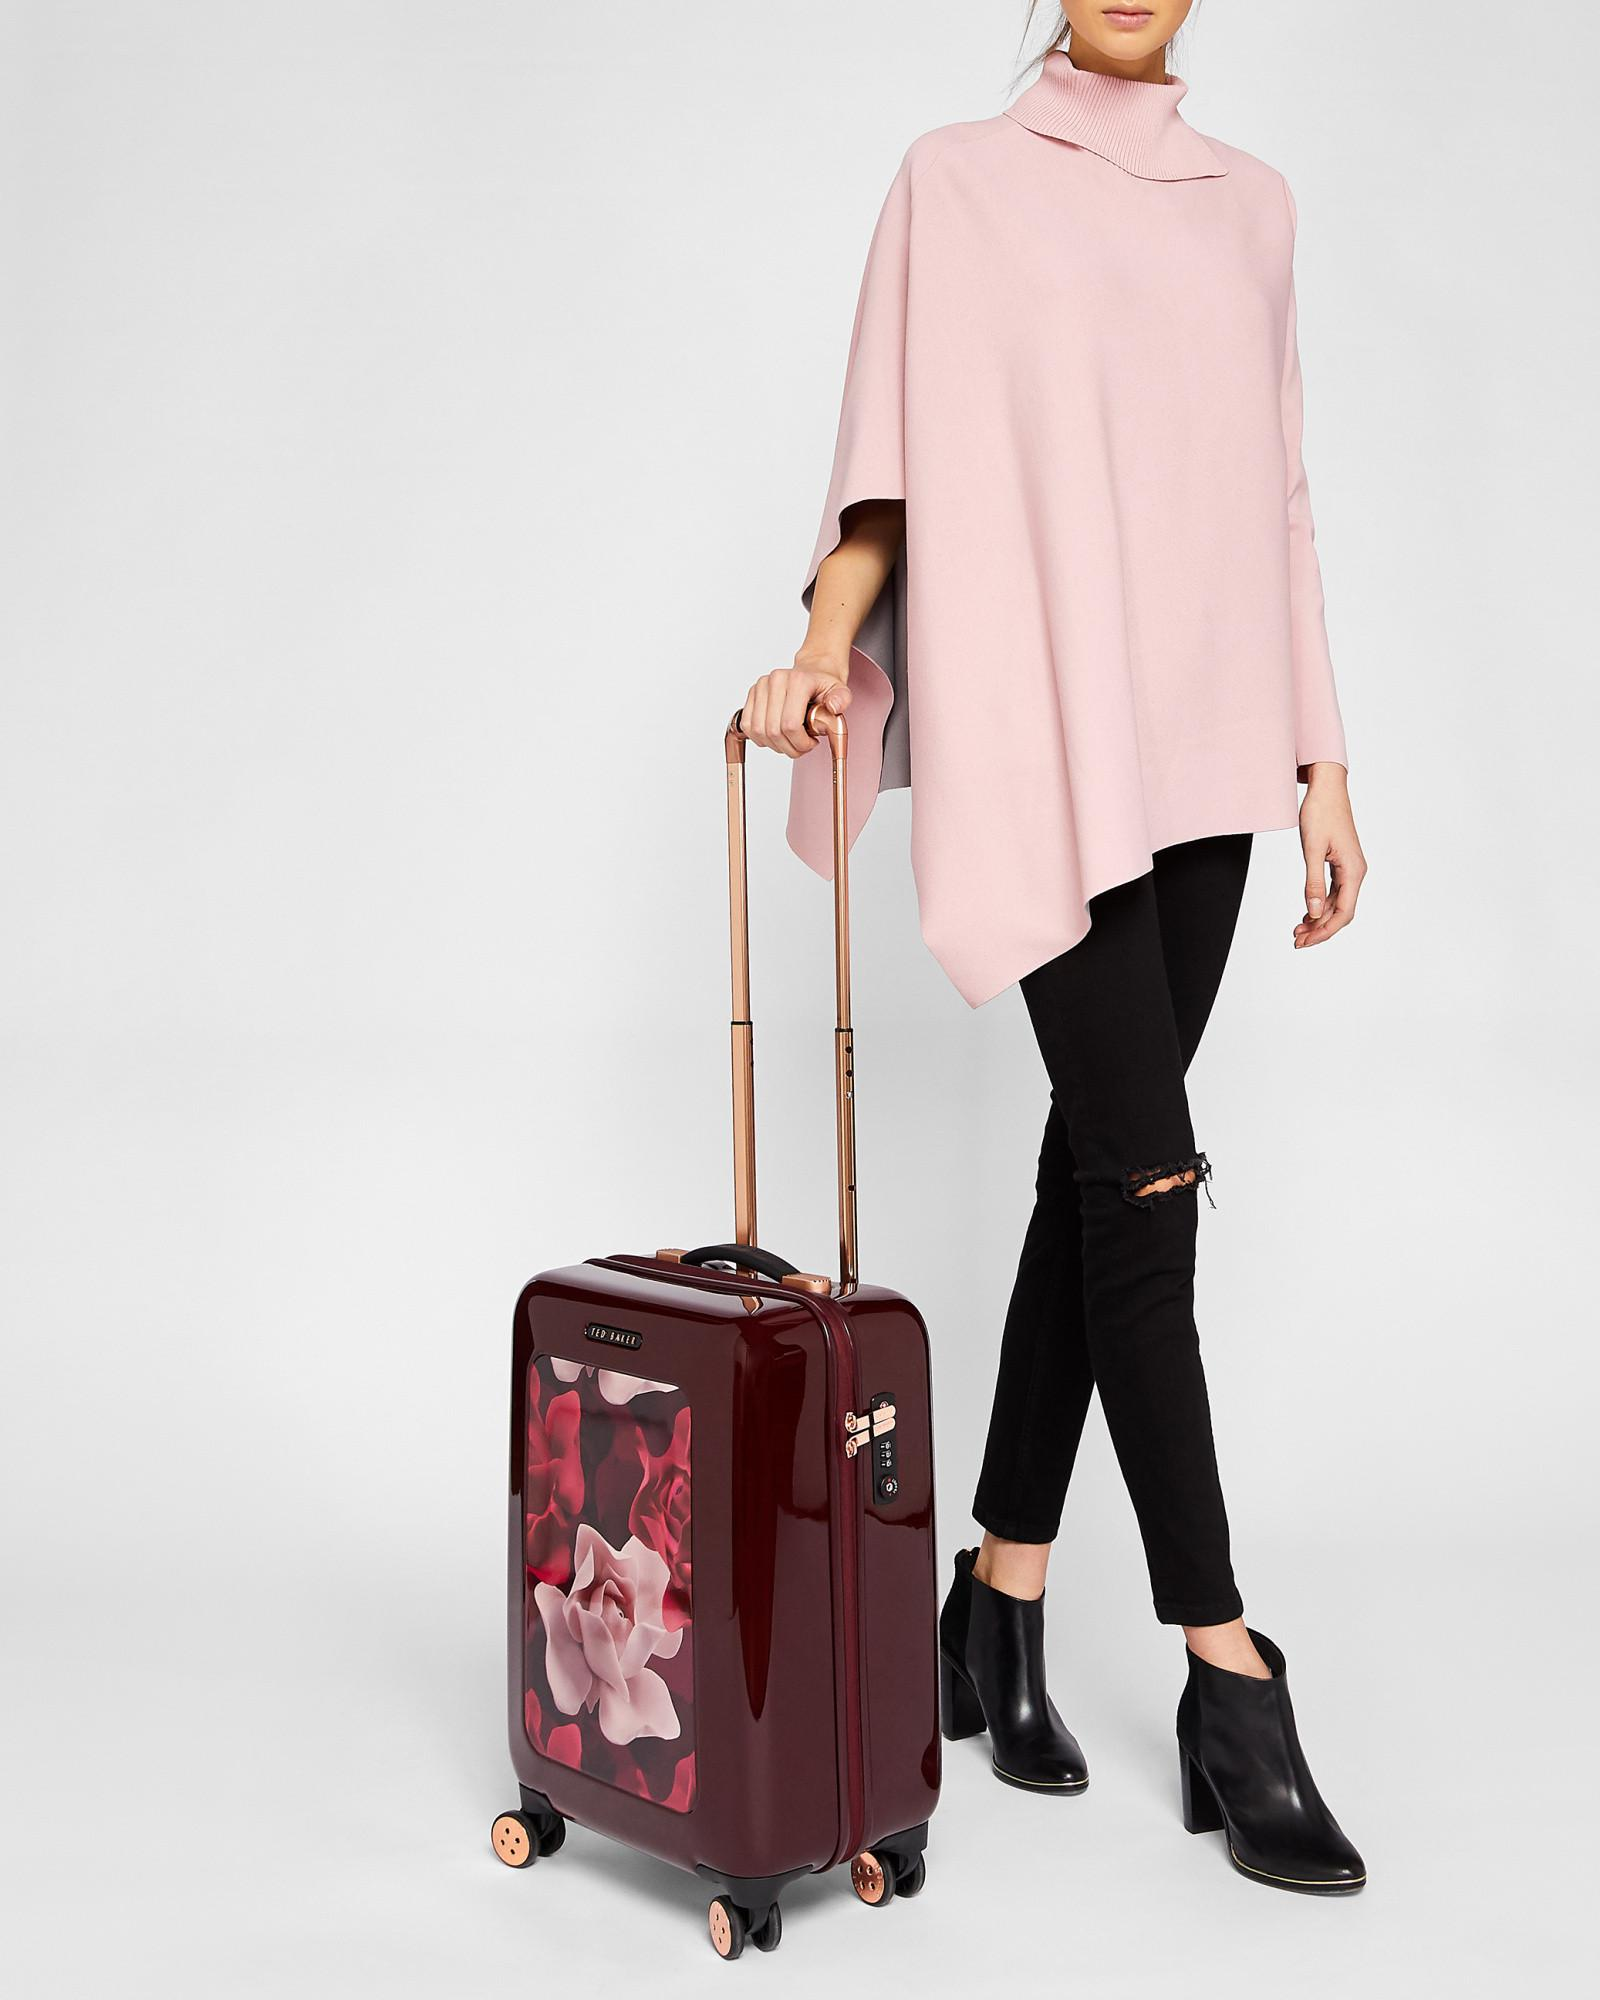 f941bc54db4e7 Ted Baker Large Porcelain Rose 31-inch Hard Shell Spinner Suitcase ...